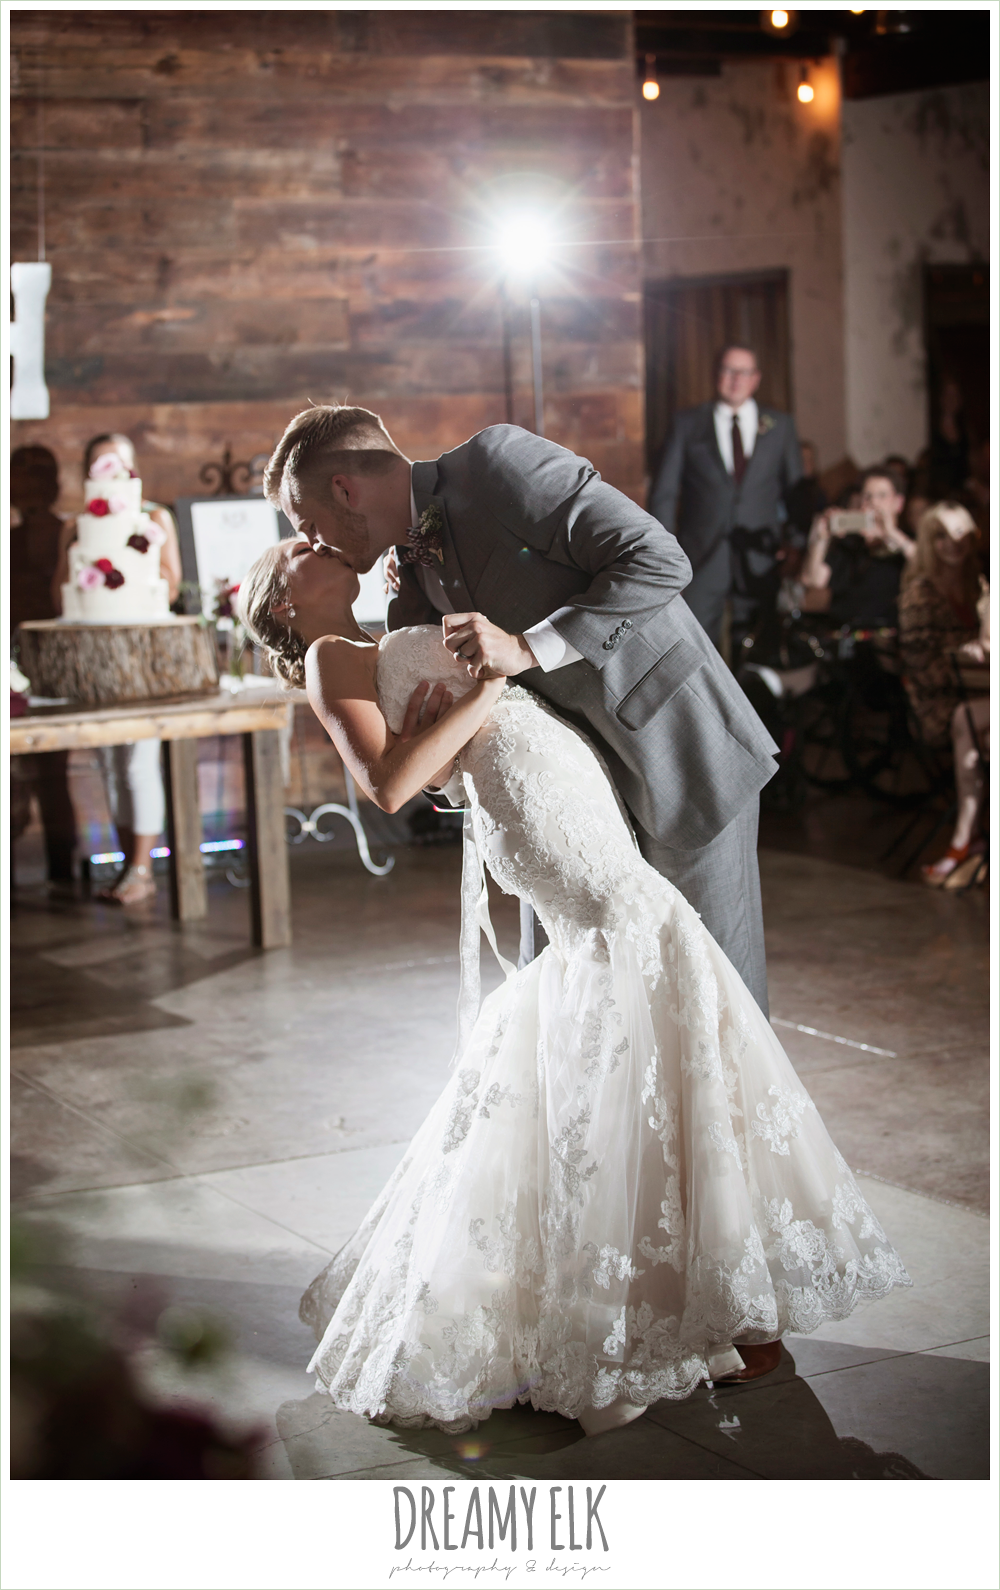 bride and groom first dance, the union on 8th wedding photo {dreamy elk photography and design}